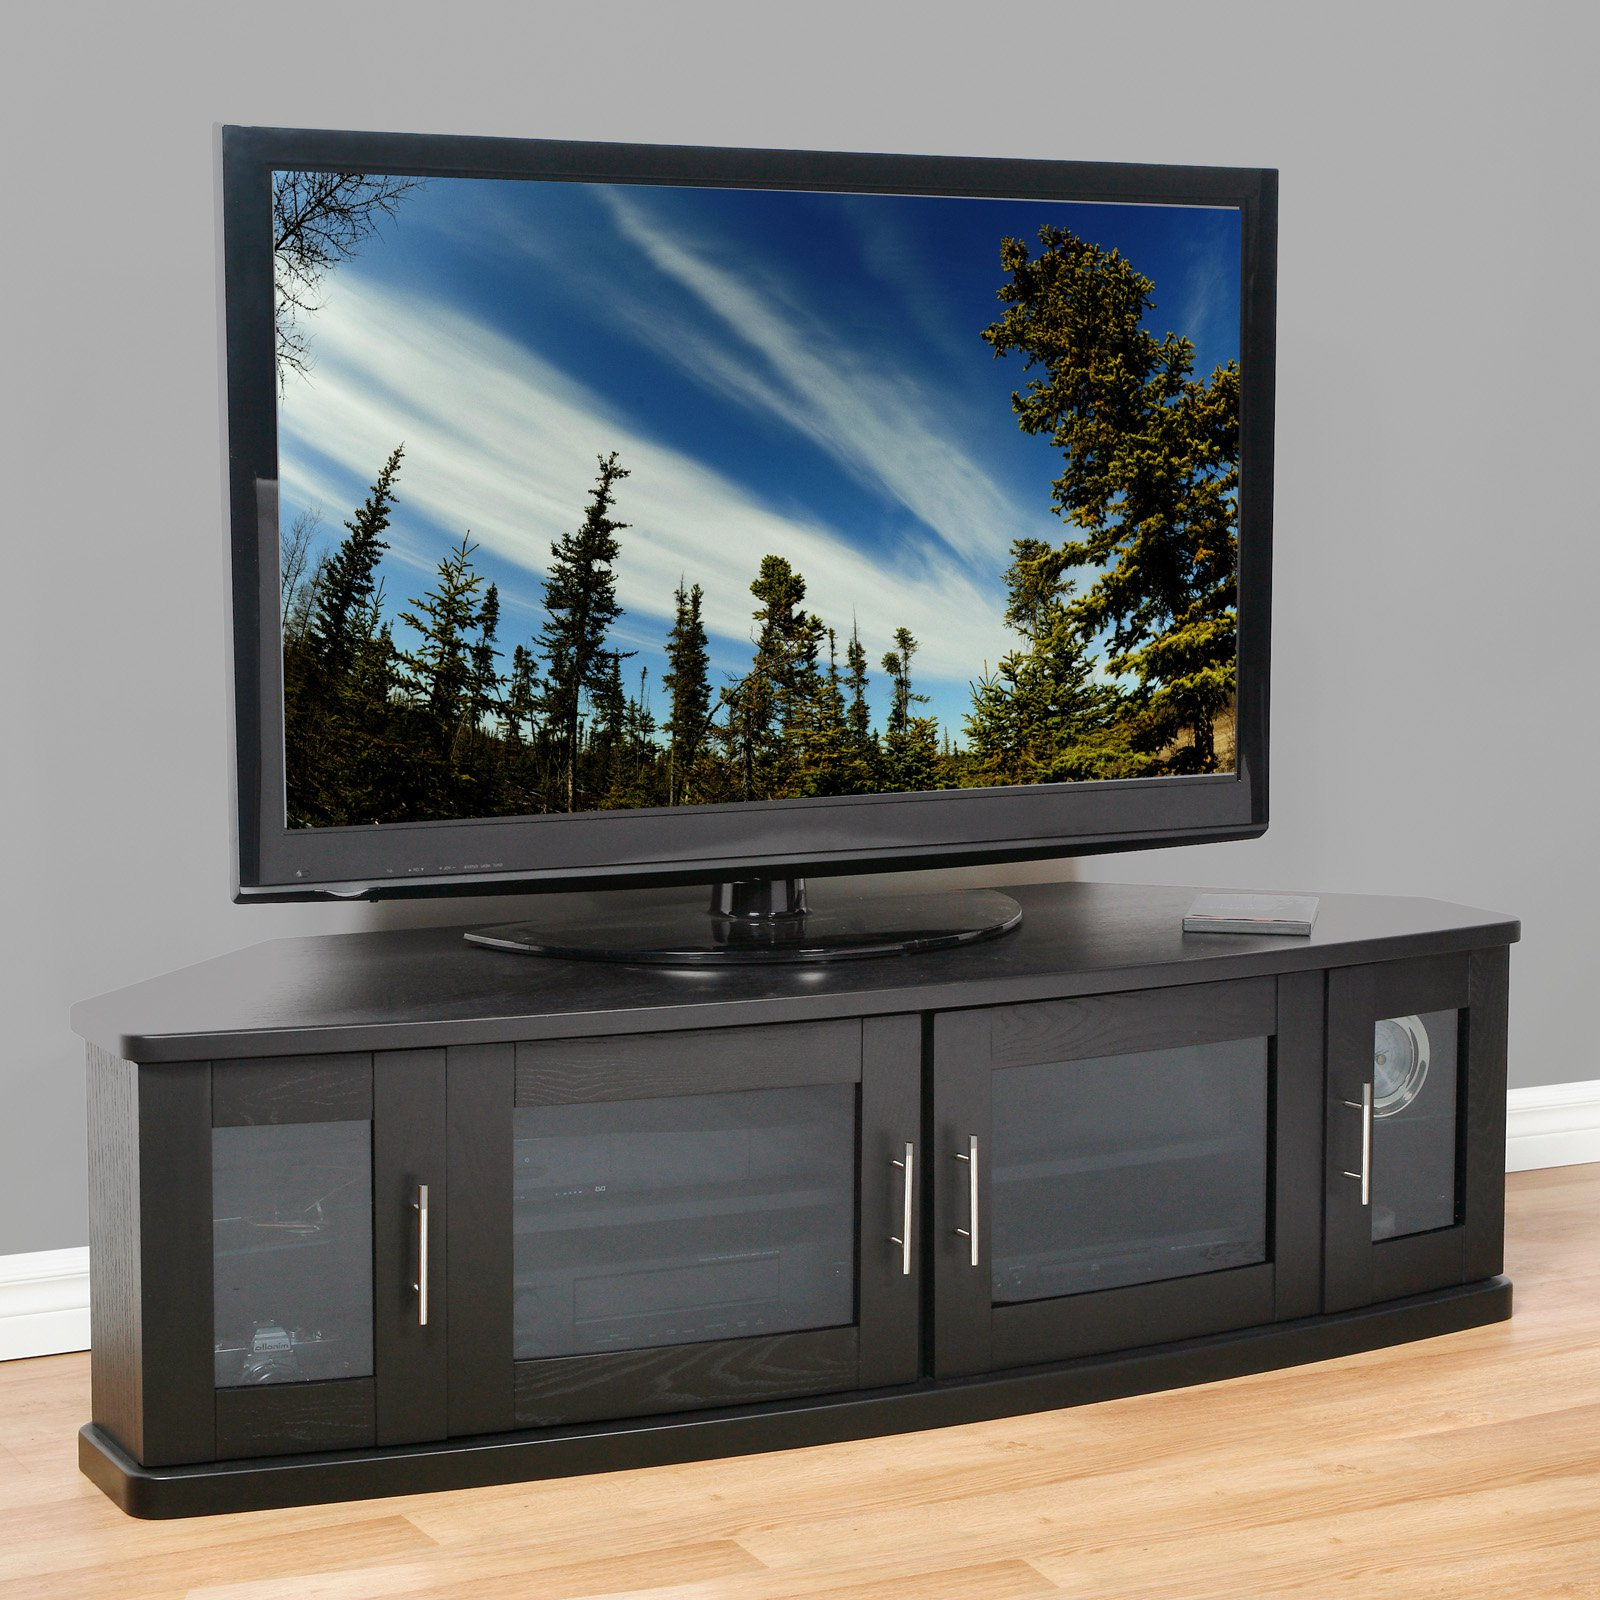 Chrome Display Stands Clear Tv With Glass Shelves Stand Corner With Best And Newest Glass Tv Cabinets (View 2 of 20)